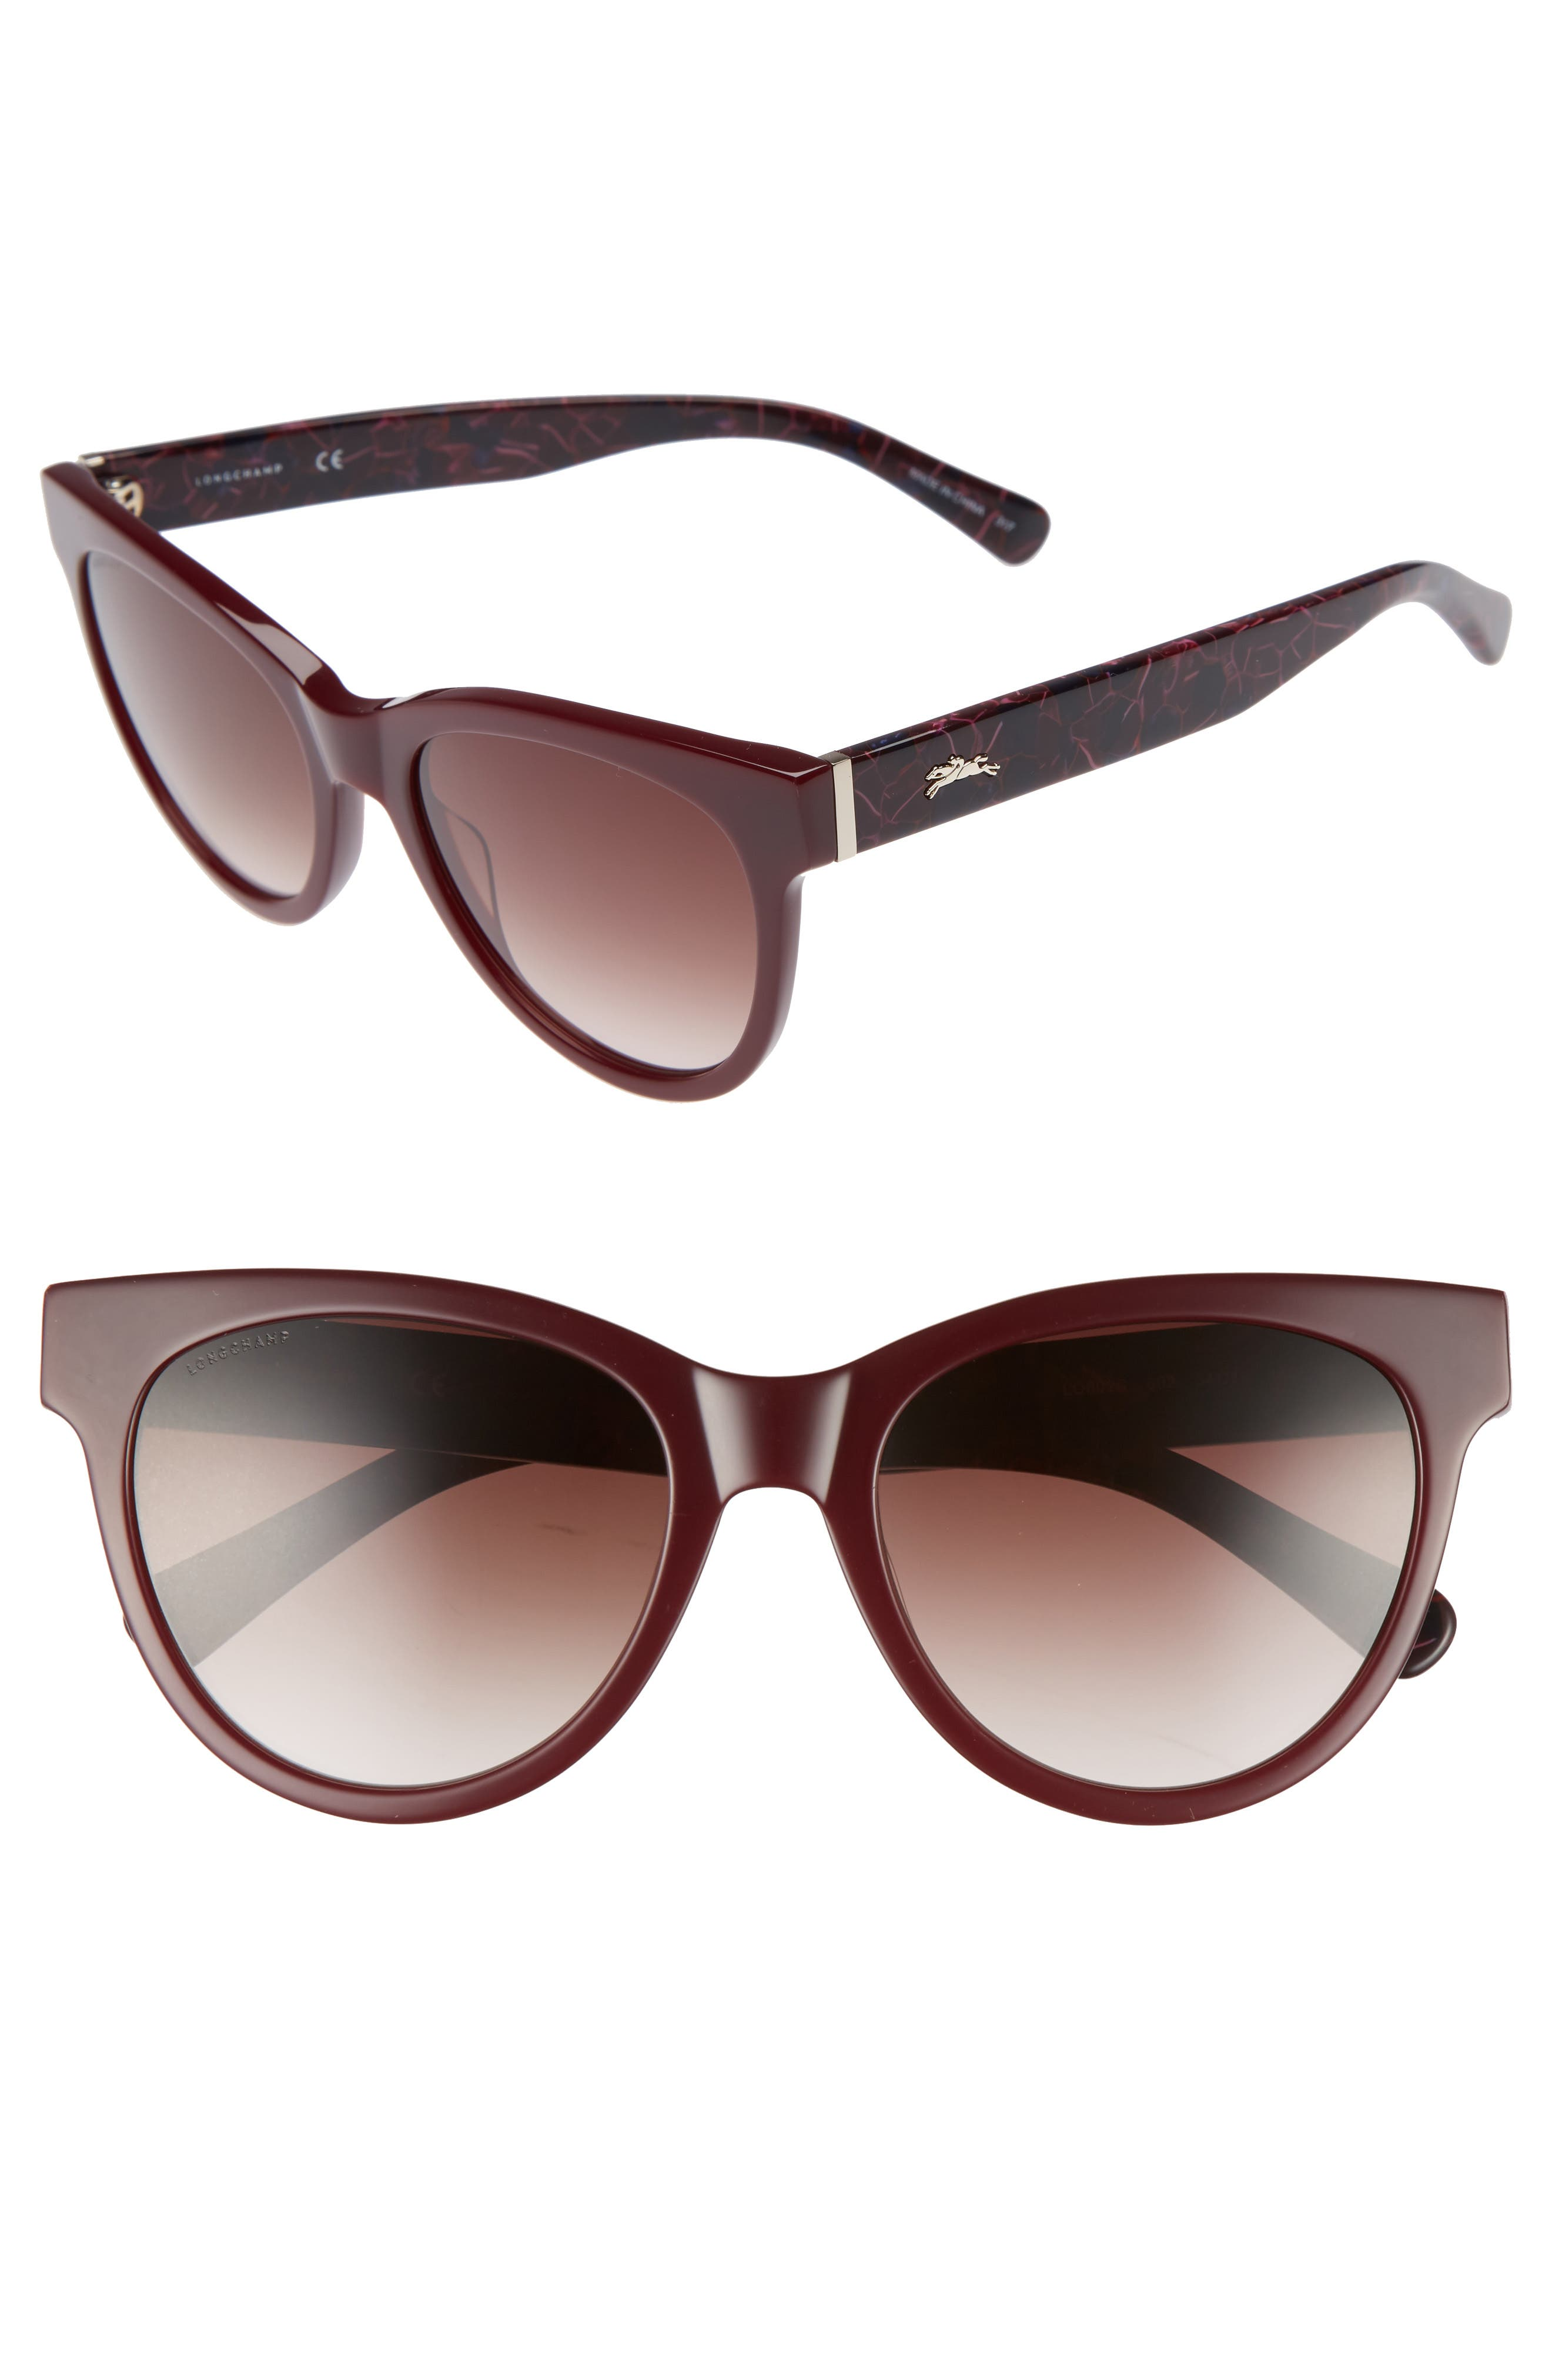 54mm Gradient Lens Cat Eye Sunglasses,                         Main,                         color, WINE